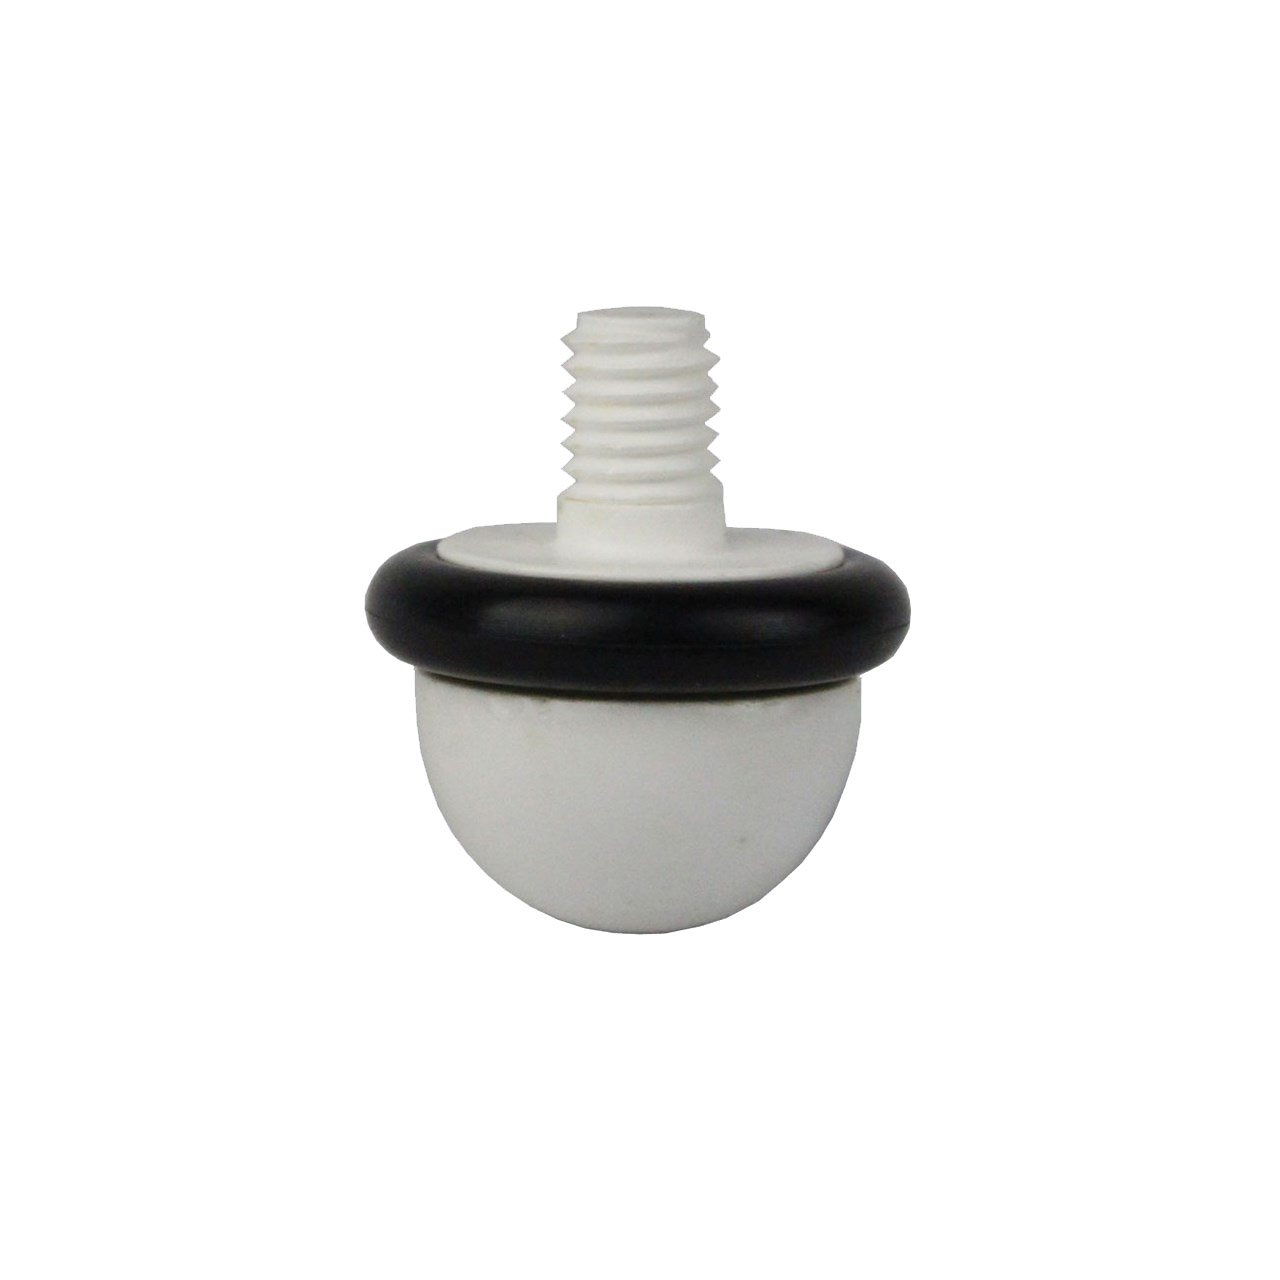 Ambutech 8mm Threaded Ceramic Tip